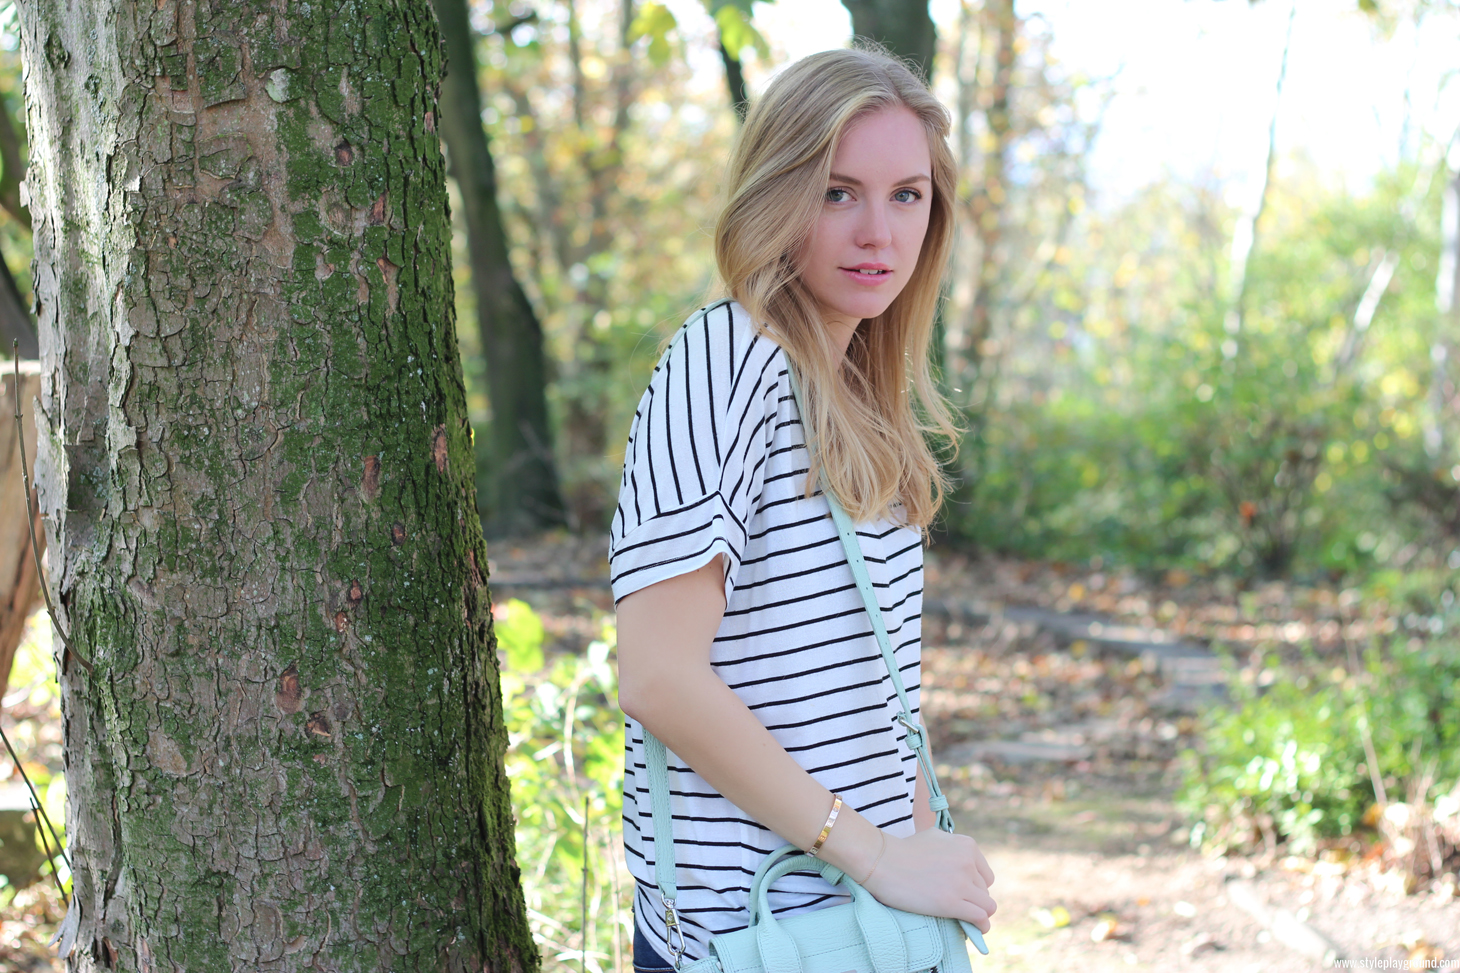 Indian summer in fall /// Axelle Blanpain /// www.styleplayground.com